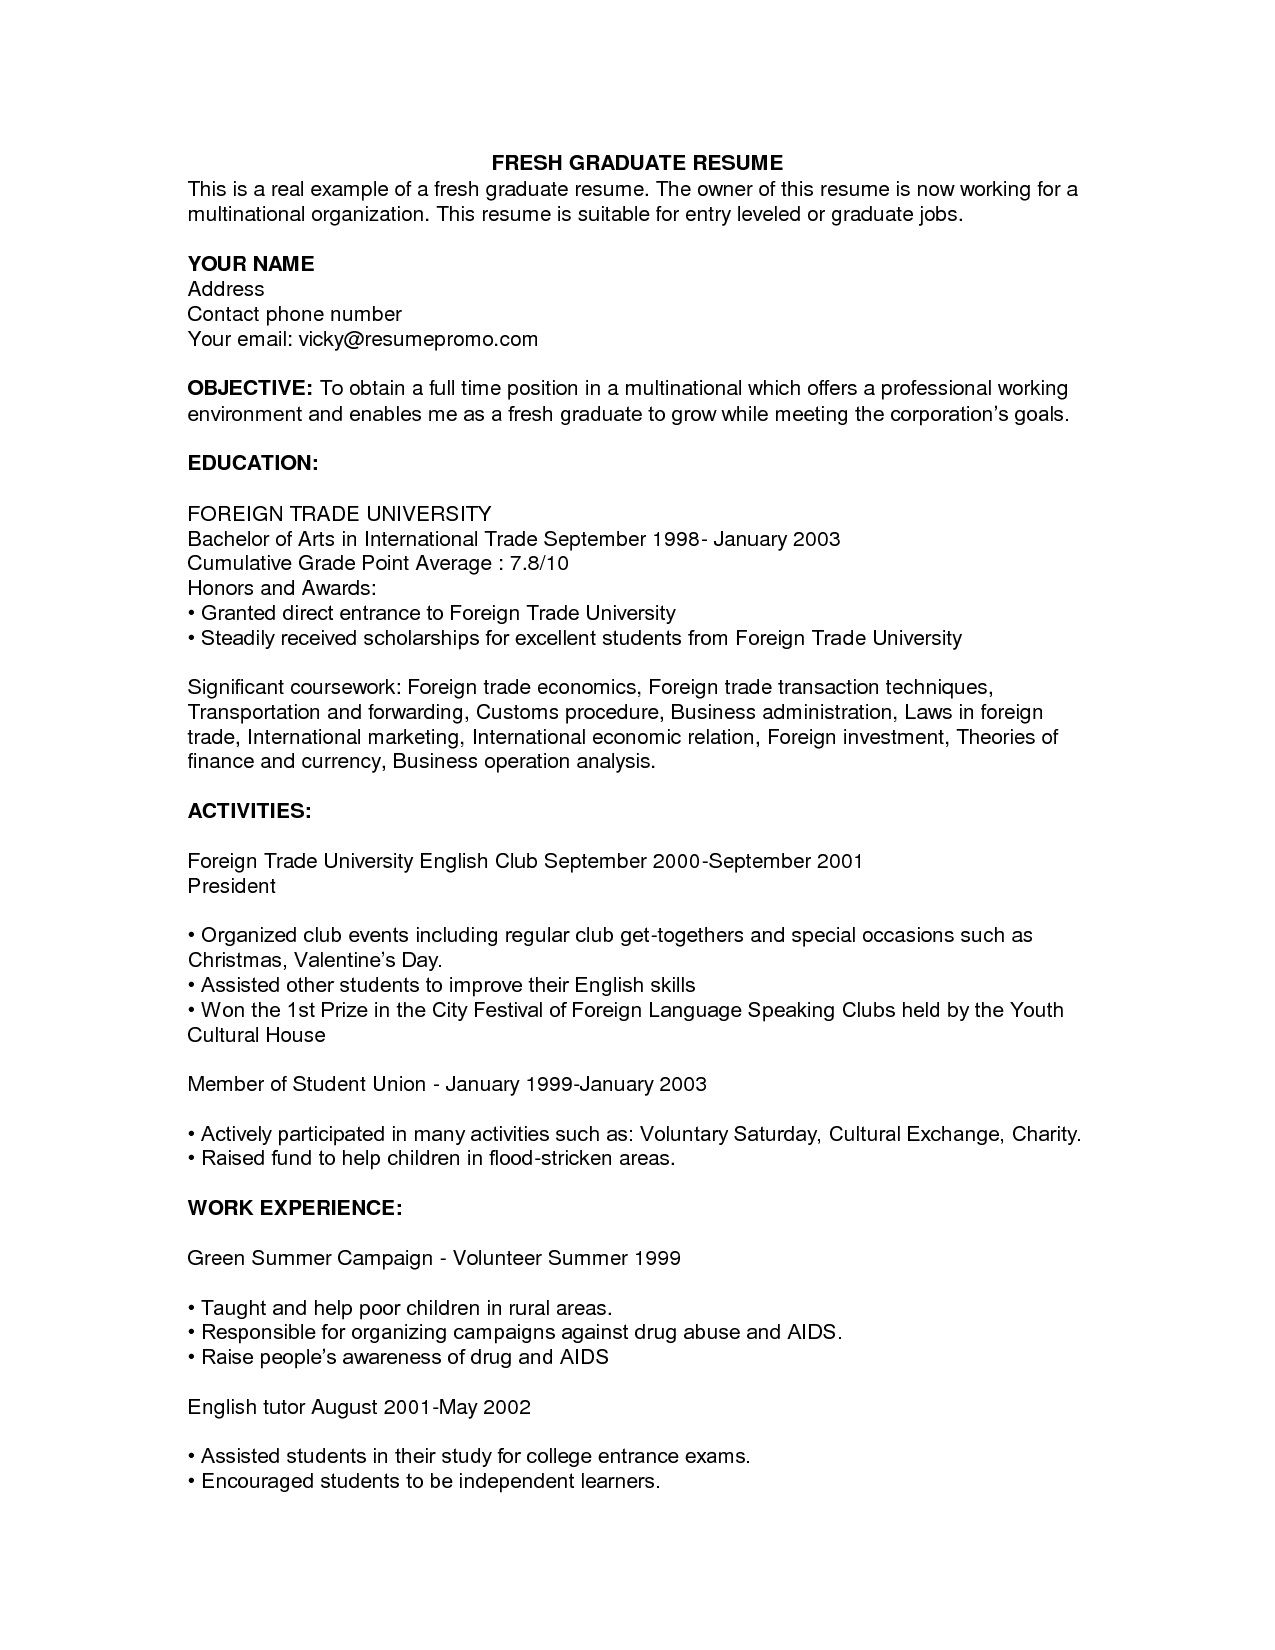 resume resume objective examples for fresh graduates example of resume for fresh graduate httpjobresumesample com com249